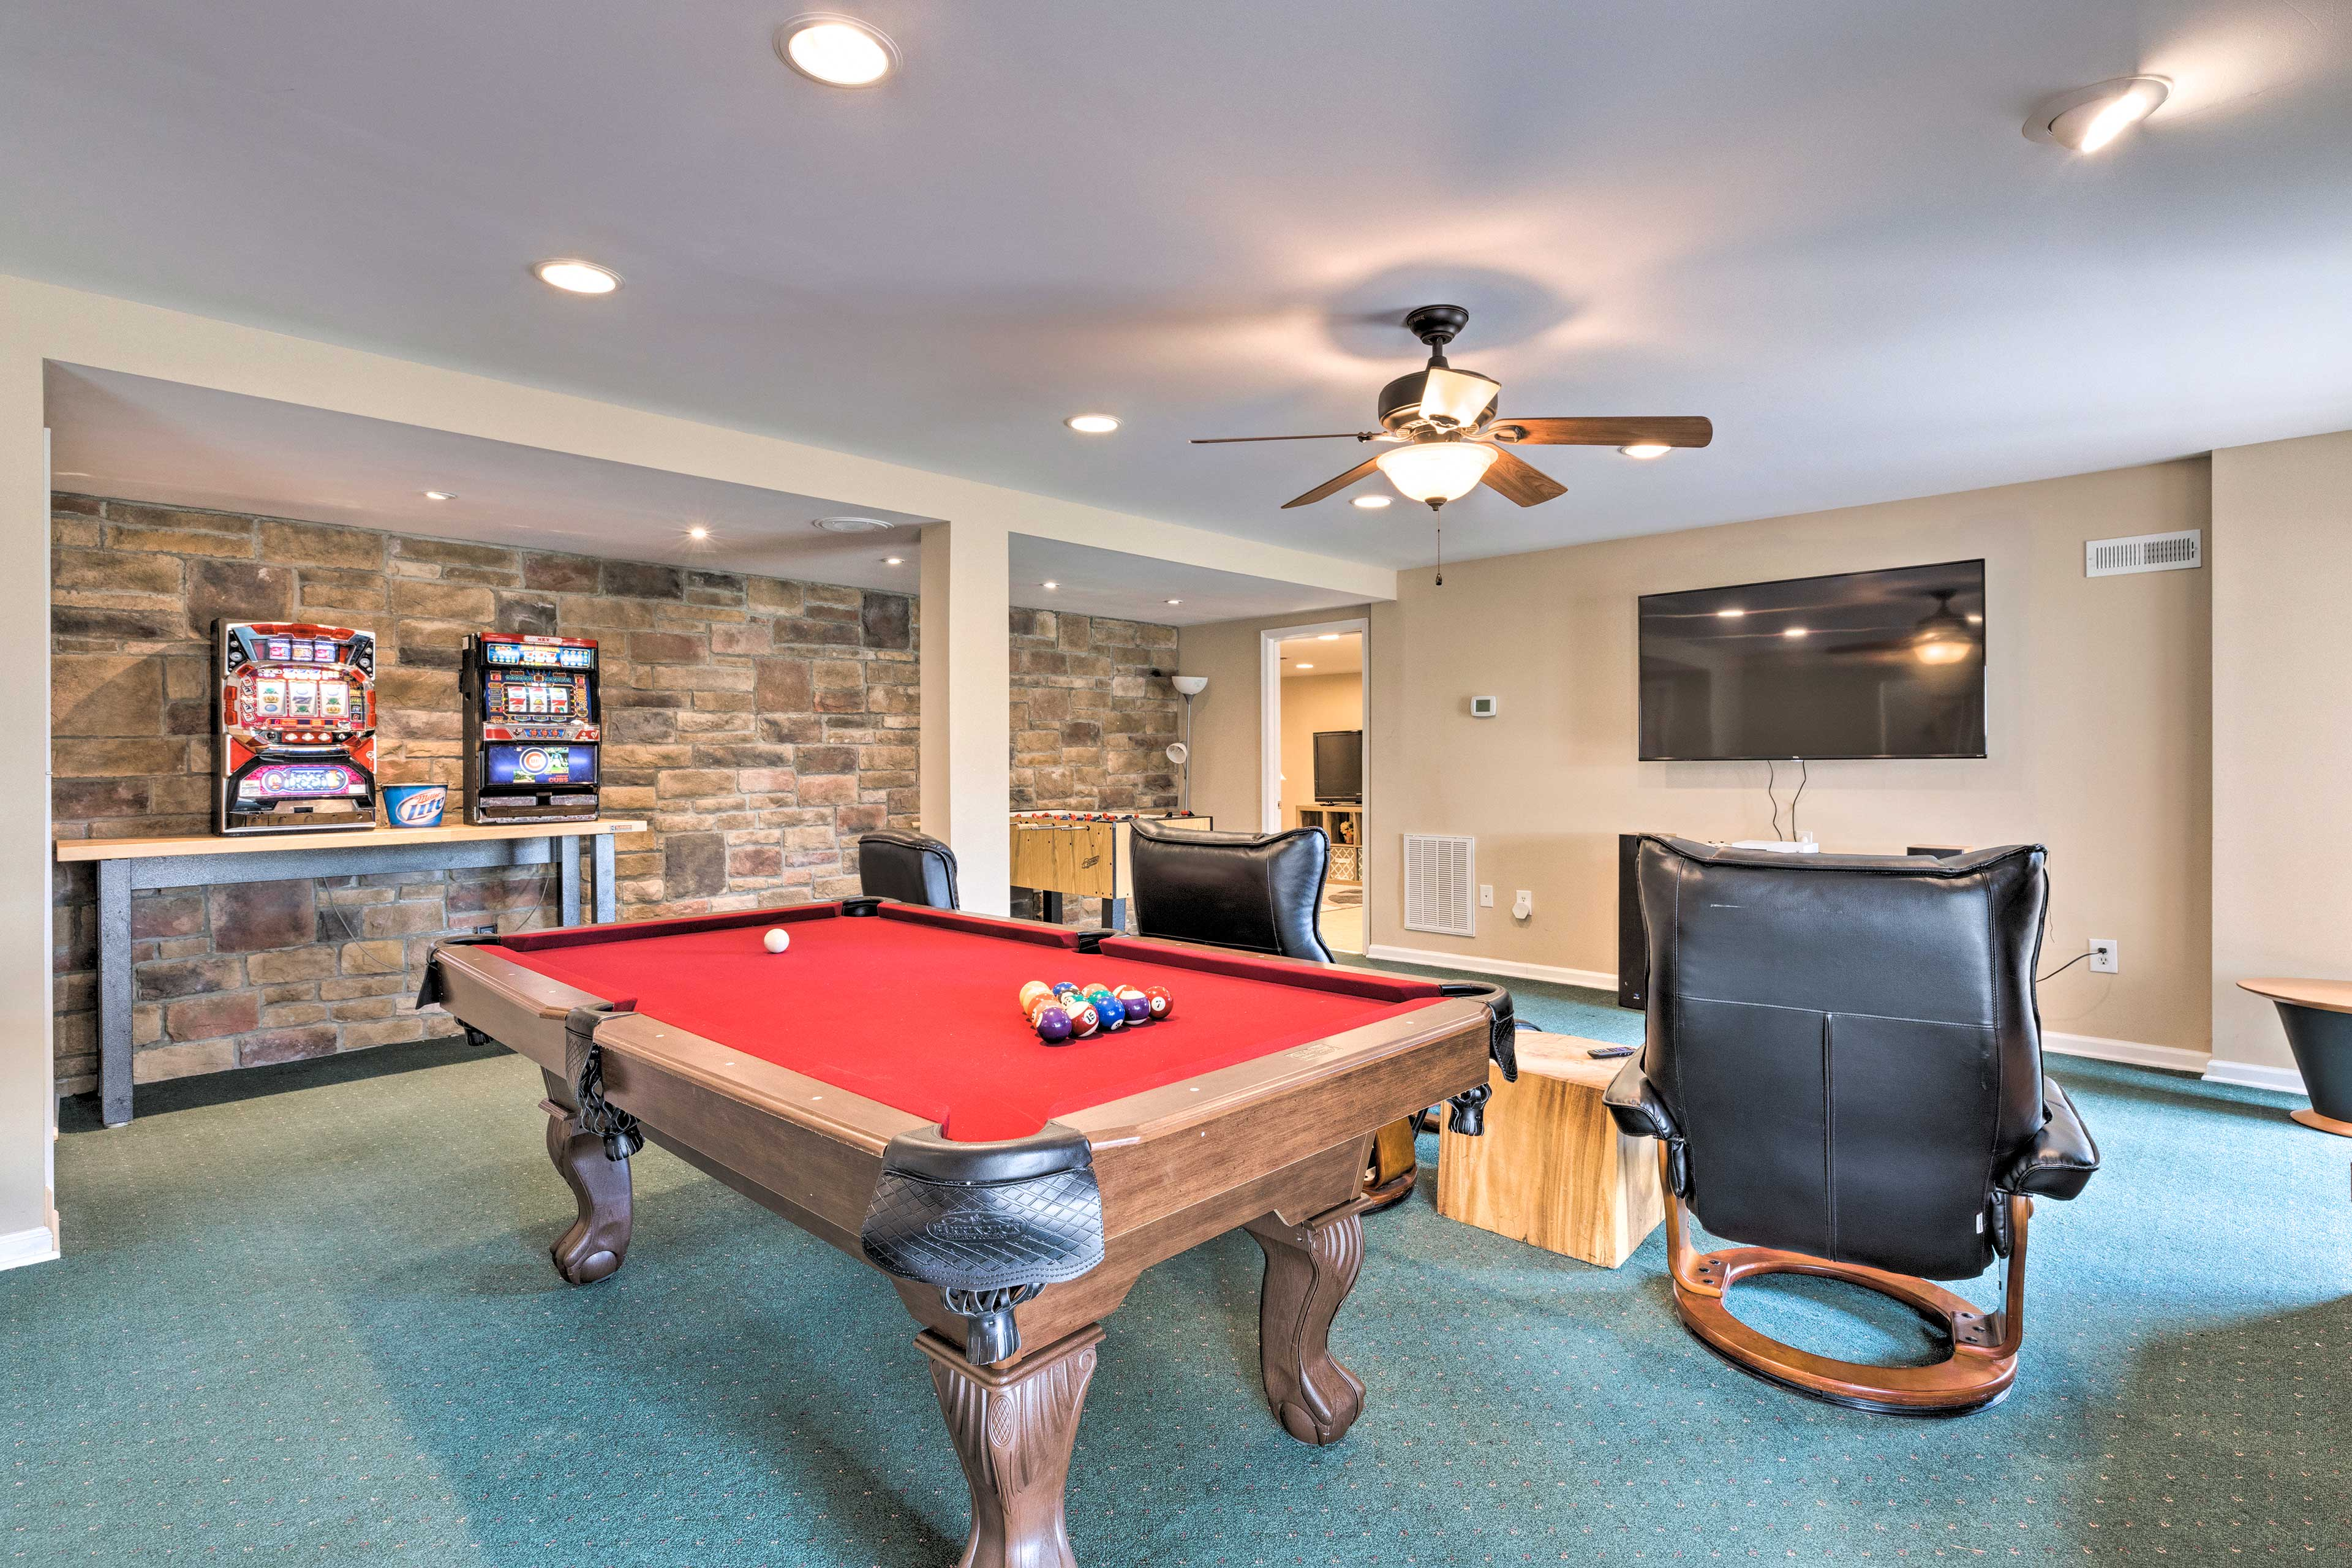 Downstairs Game Room   Pool Table   Foosball Table   TV w/ YouTube TV